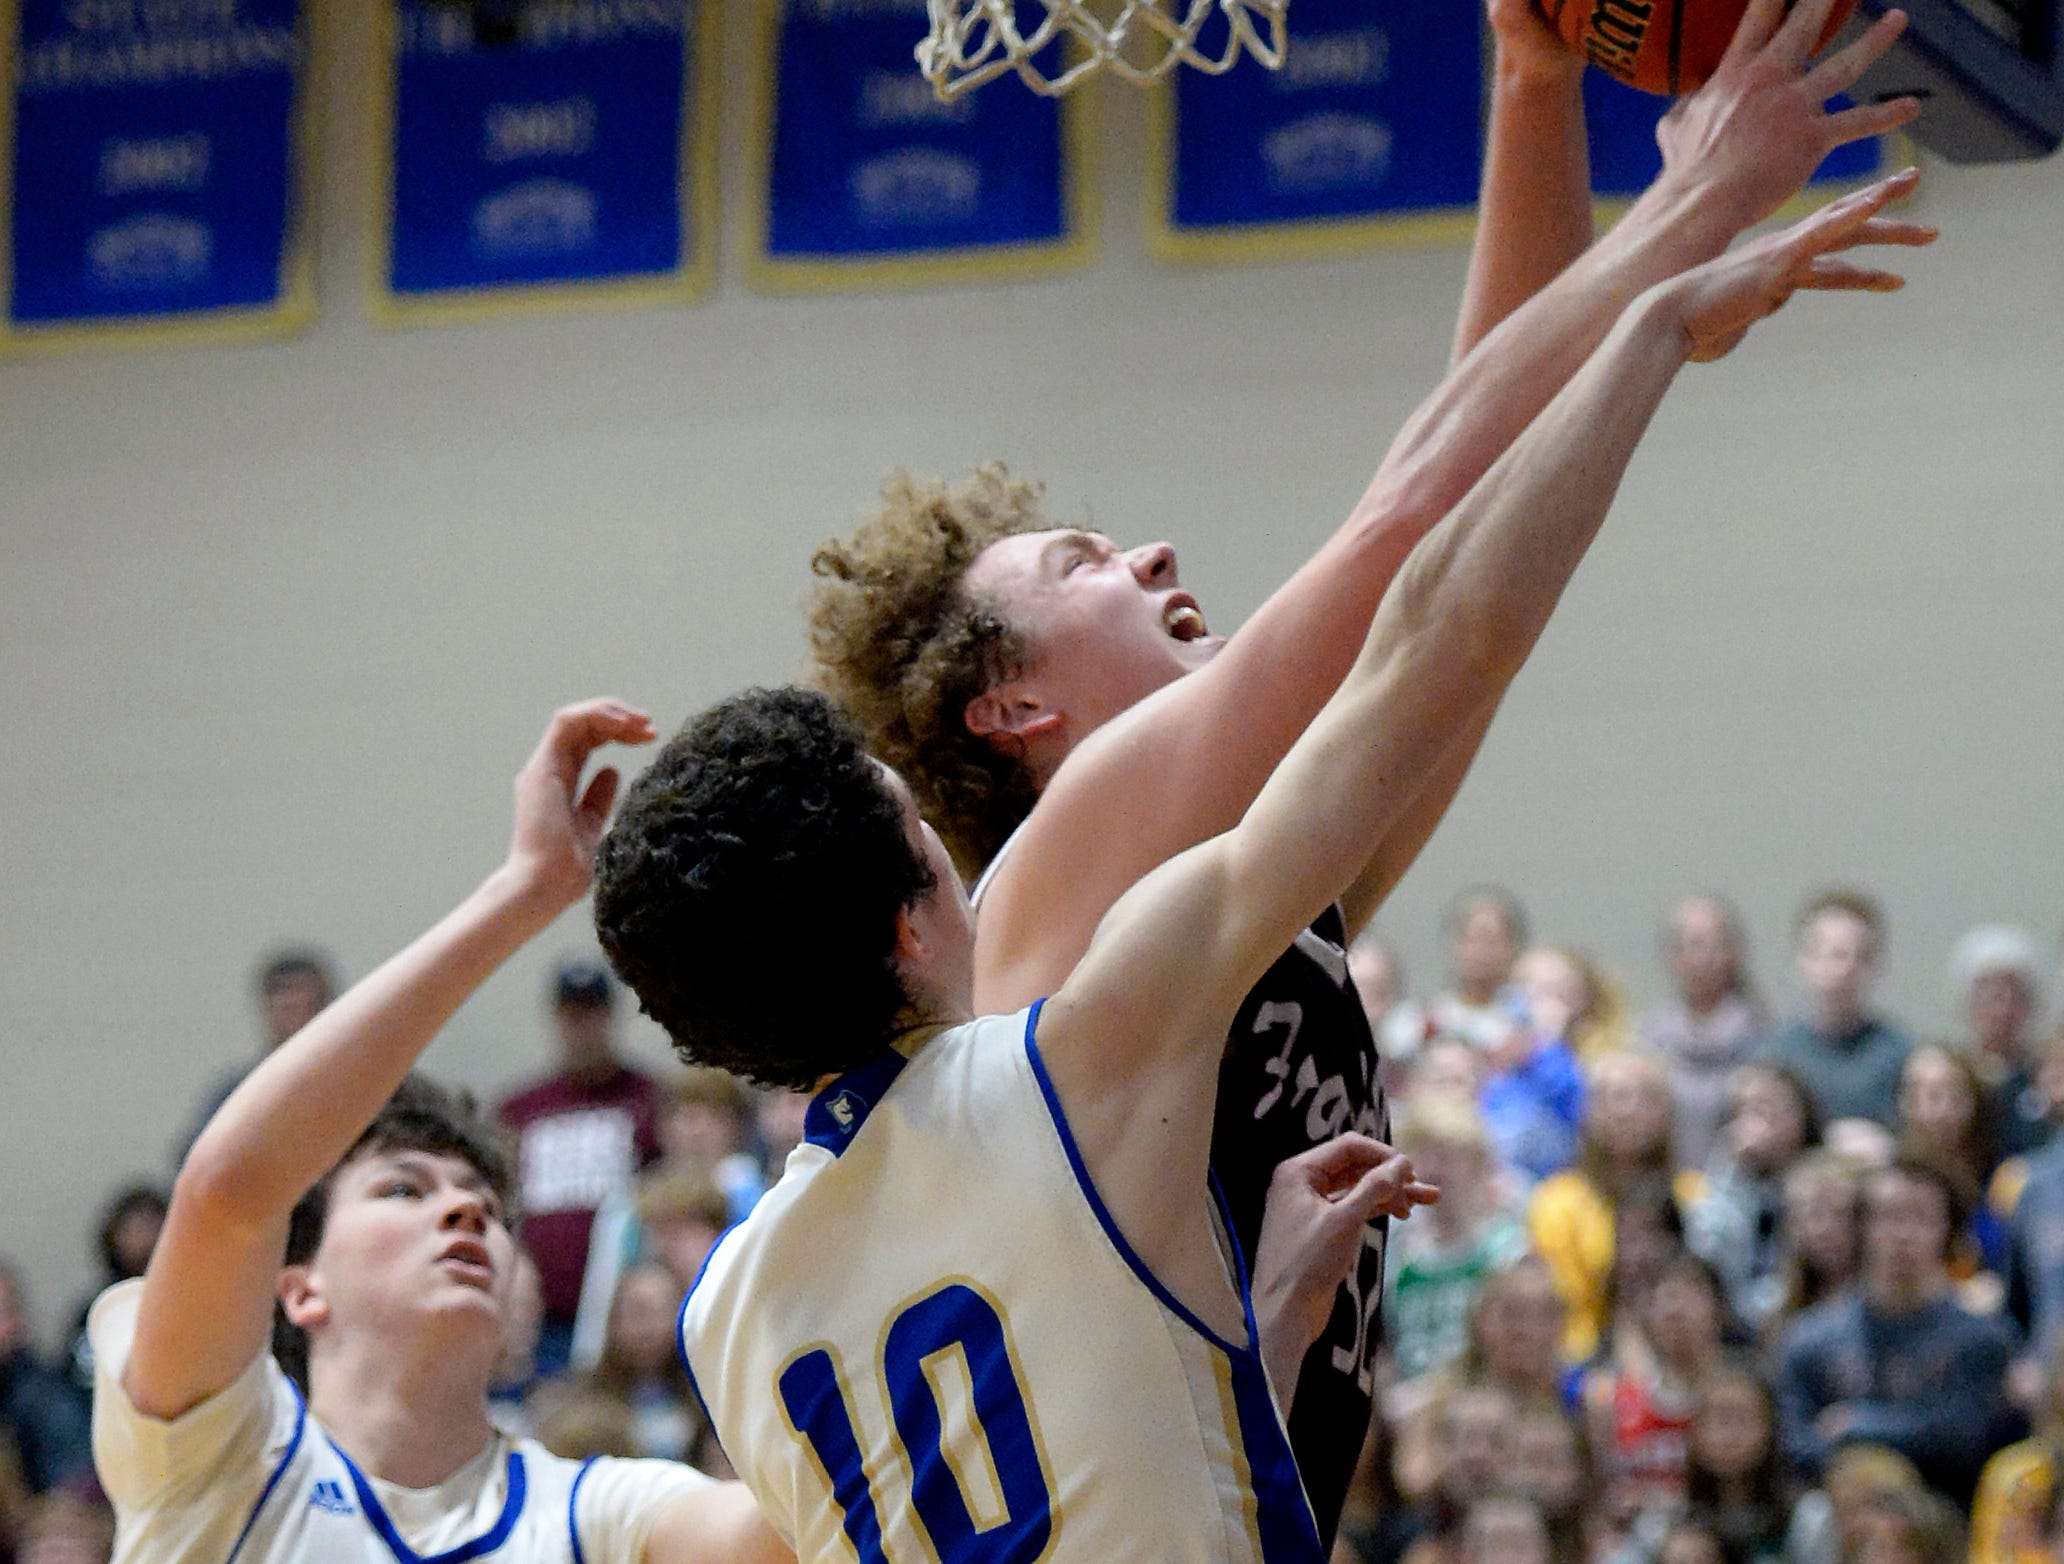 Franklin forward Matt Thurman, right, and Brentwood guard John Windley (10) reach for a rebound during the second half of an High School basketball game Tuesday, Jan. 15, 2019, in Brentwood, Tenn. Franklin won 53-51.